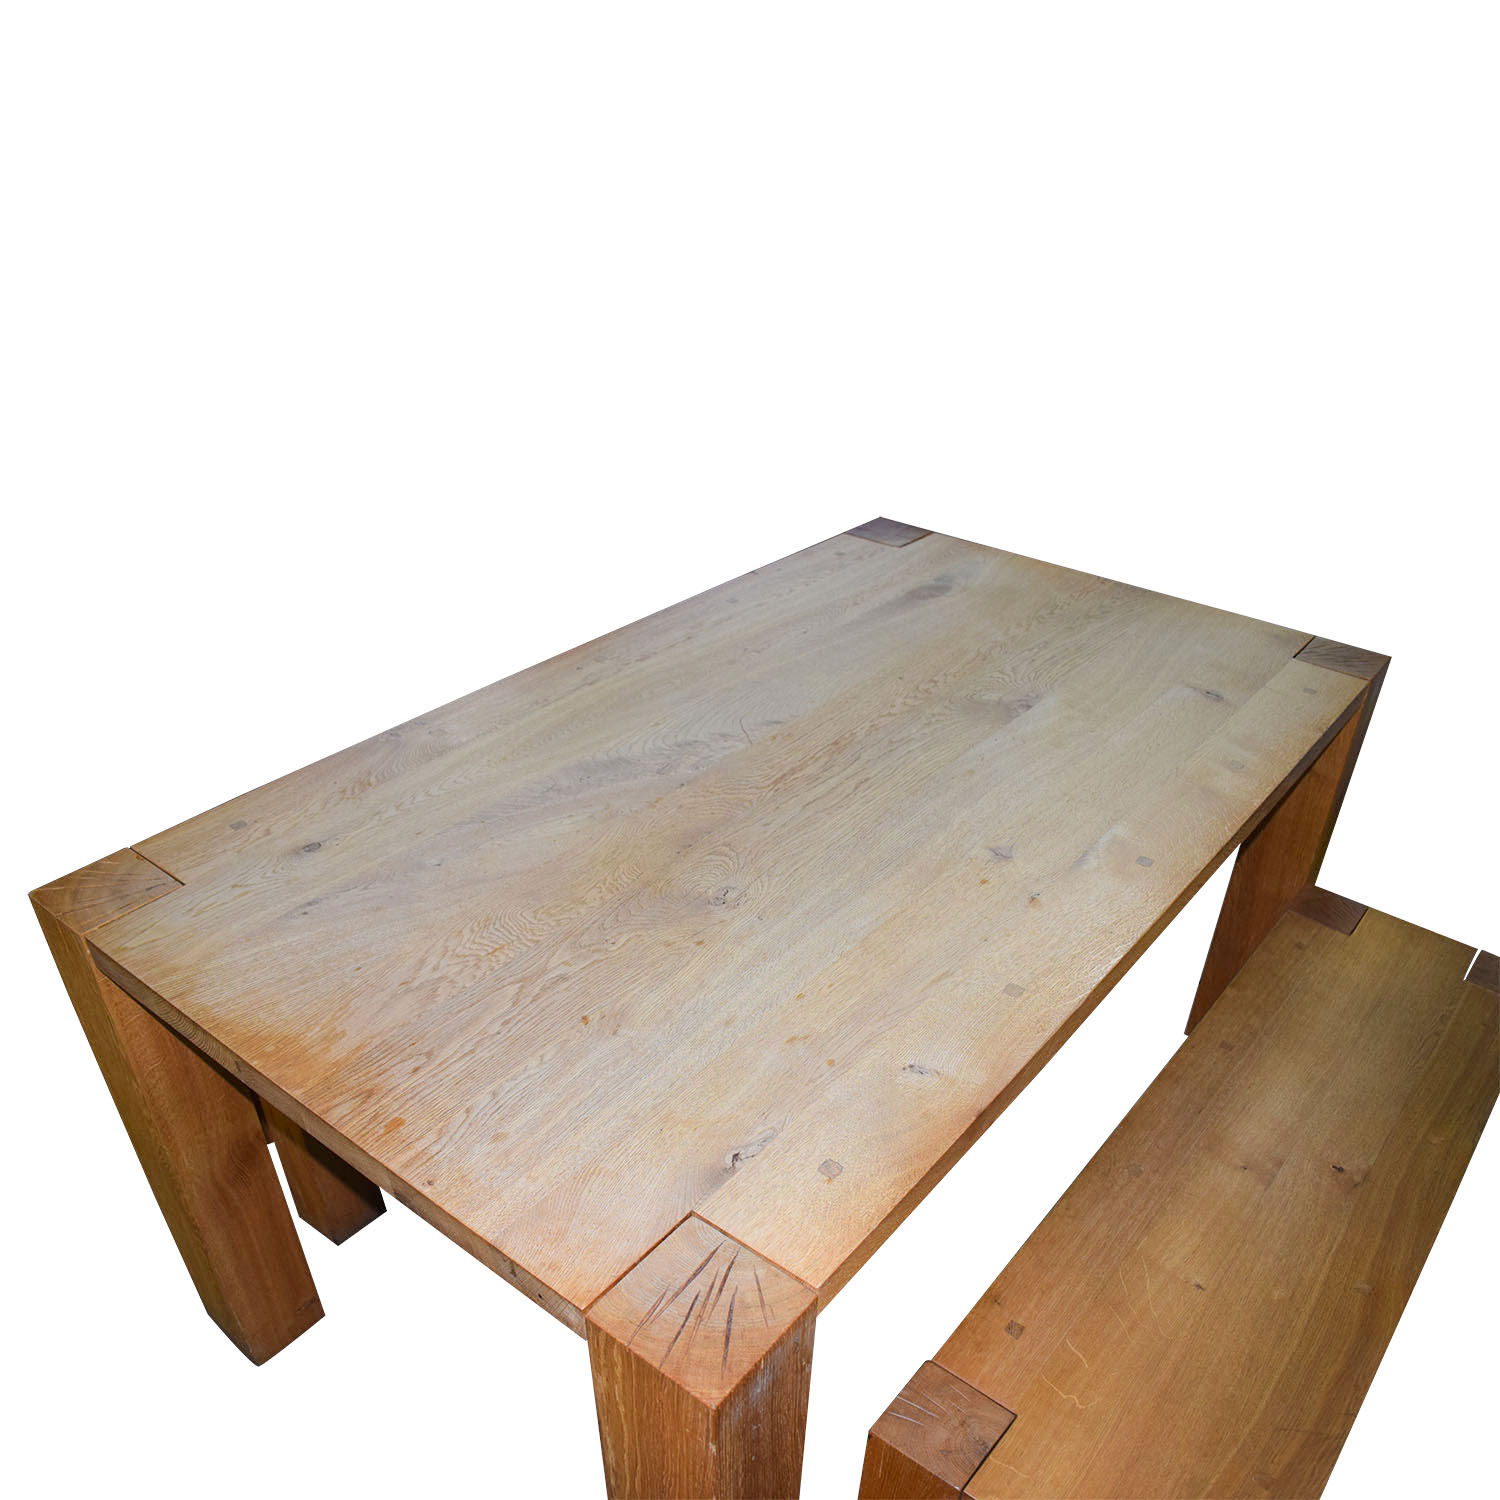 Crate Barrel Sur Natural Dining Table With Benches